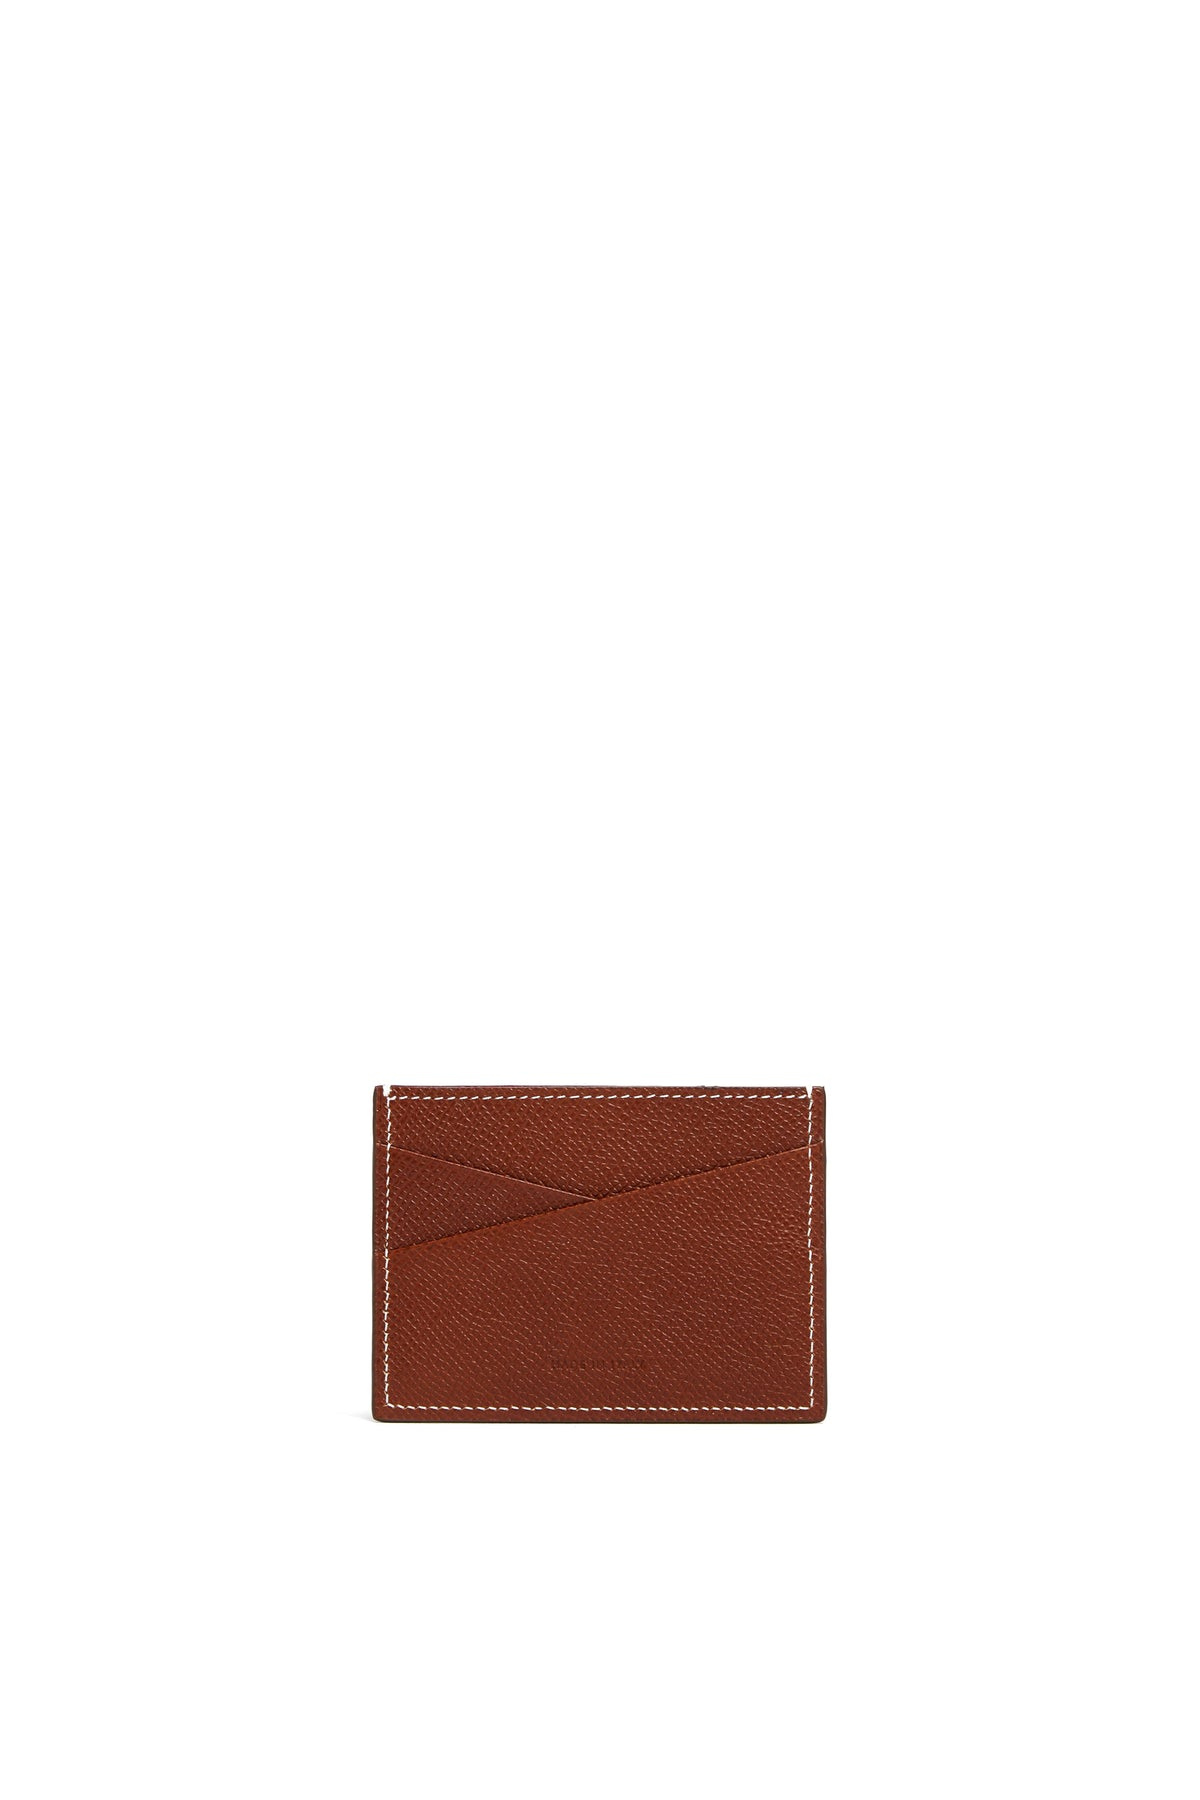 Mark Cross Leather Card Case Saffiano Acorn Back